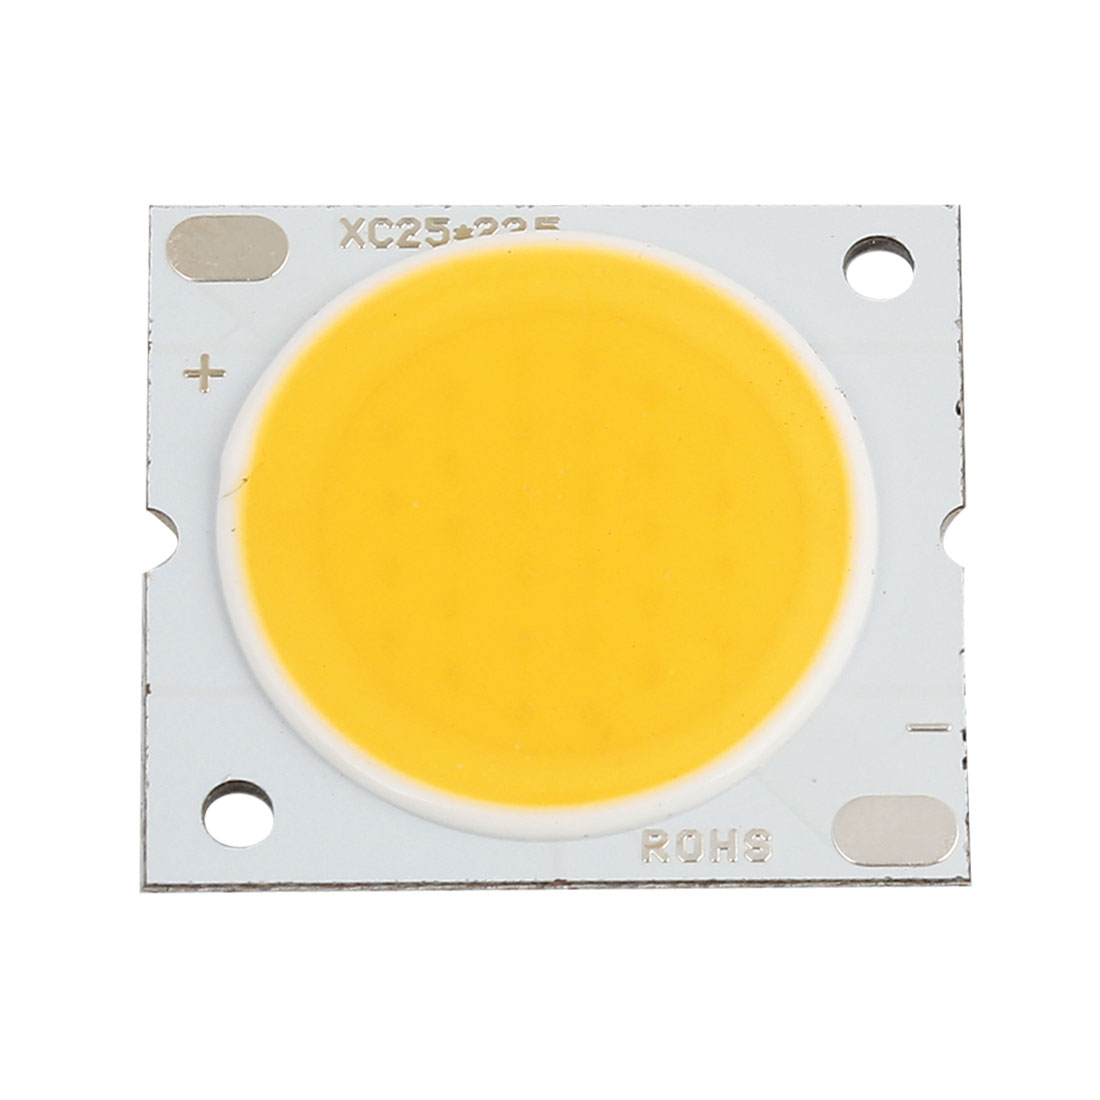 45-47V 300mA 15W Warm White Light High Power SMD COB LED Lamp Chip Bulb